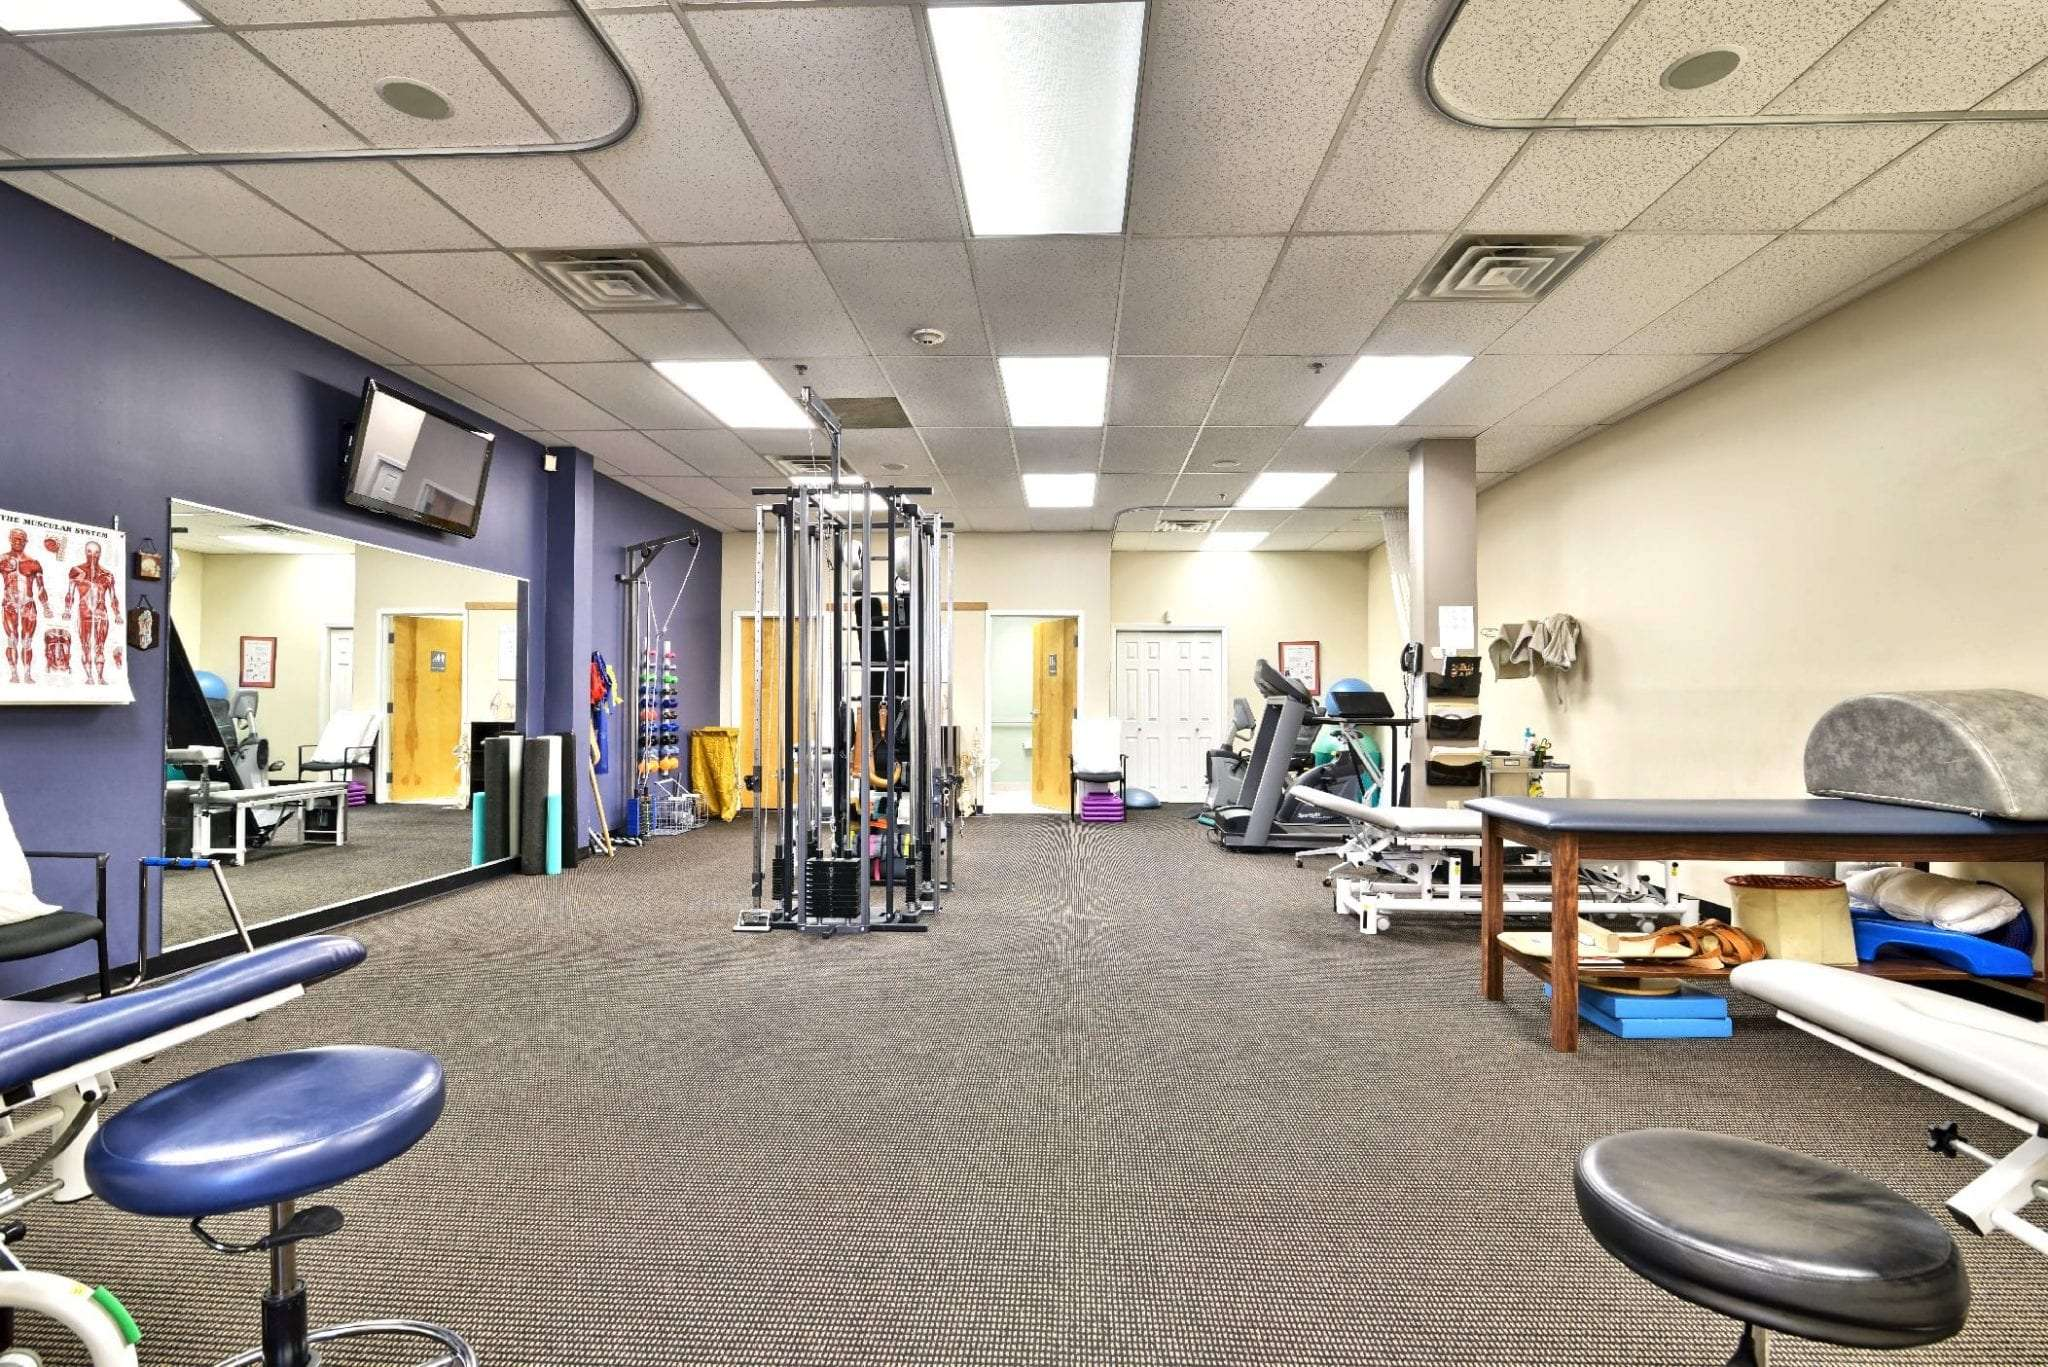 This image is of the equipment at our physical therapy clinic in Haverhill, Massachusetts.